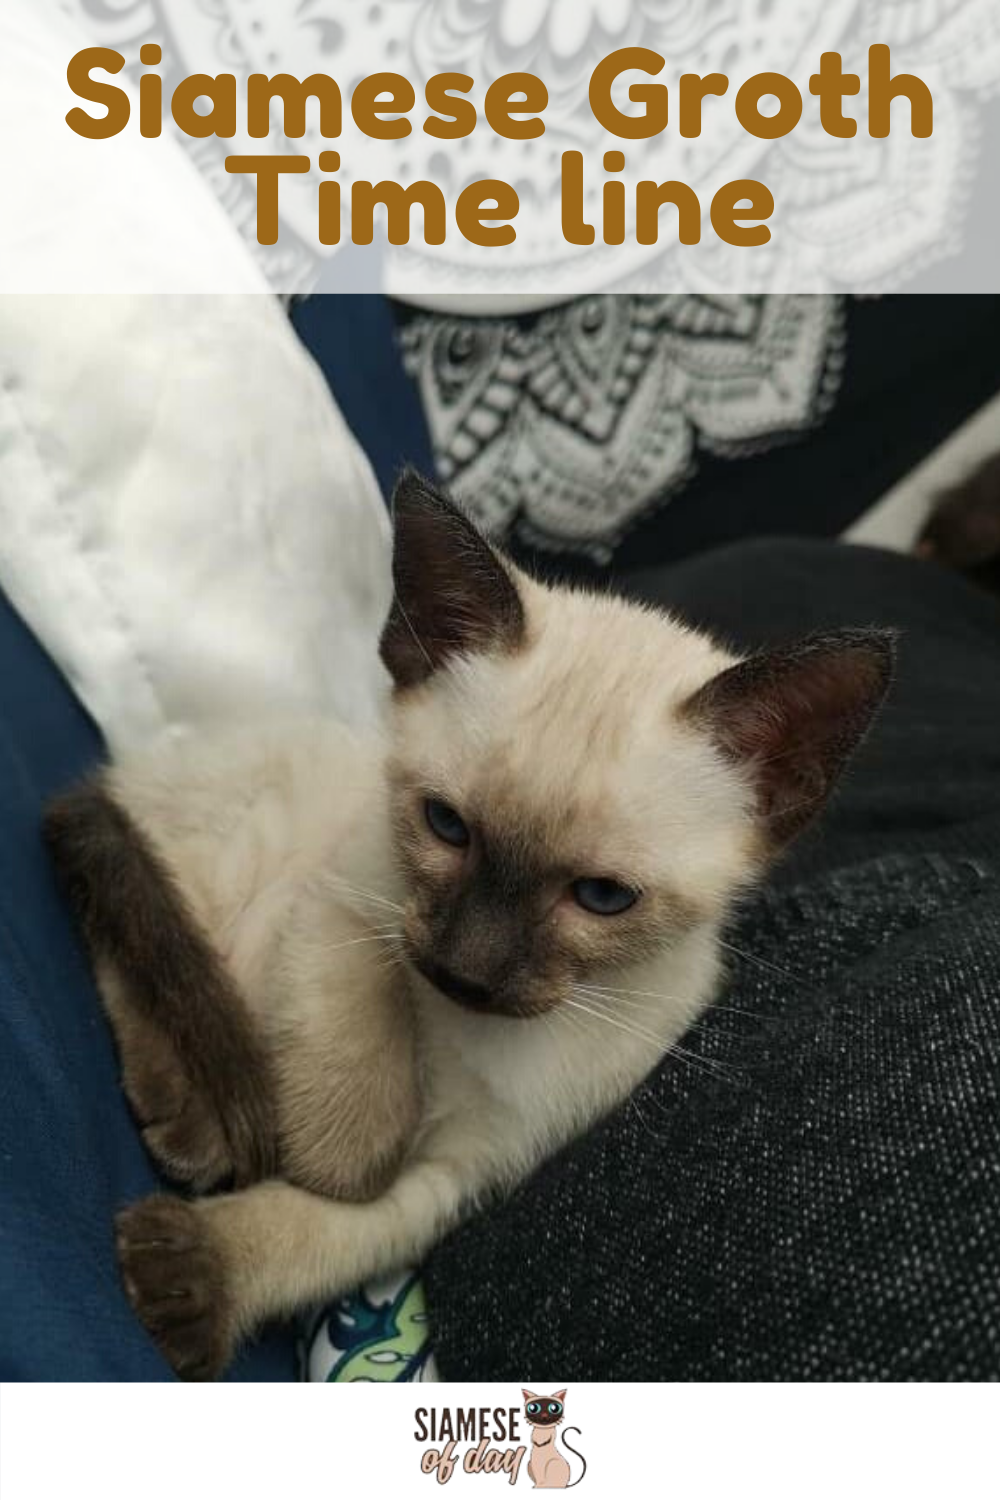 Siamese Kittens Growth Timeline Siamese Of Day In 2020 Siamese Kittens Kittens Funny Baby Cats